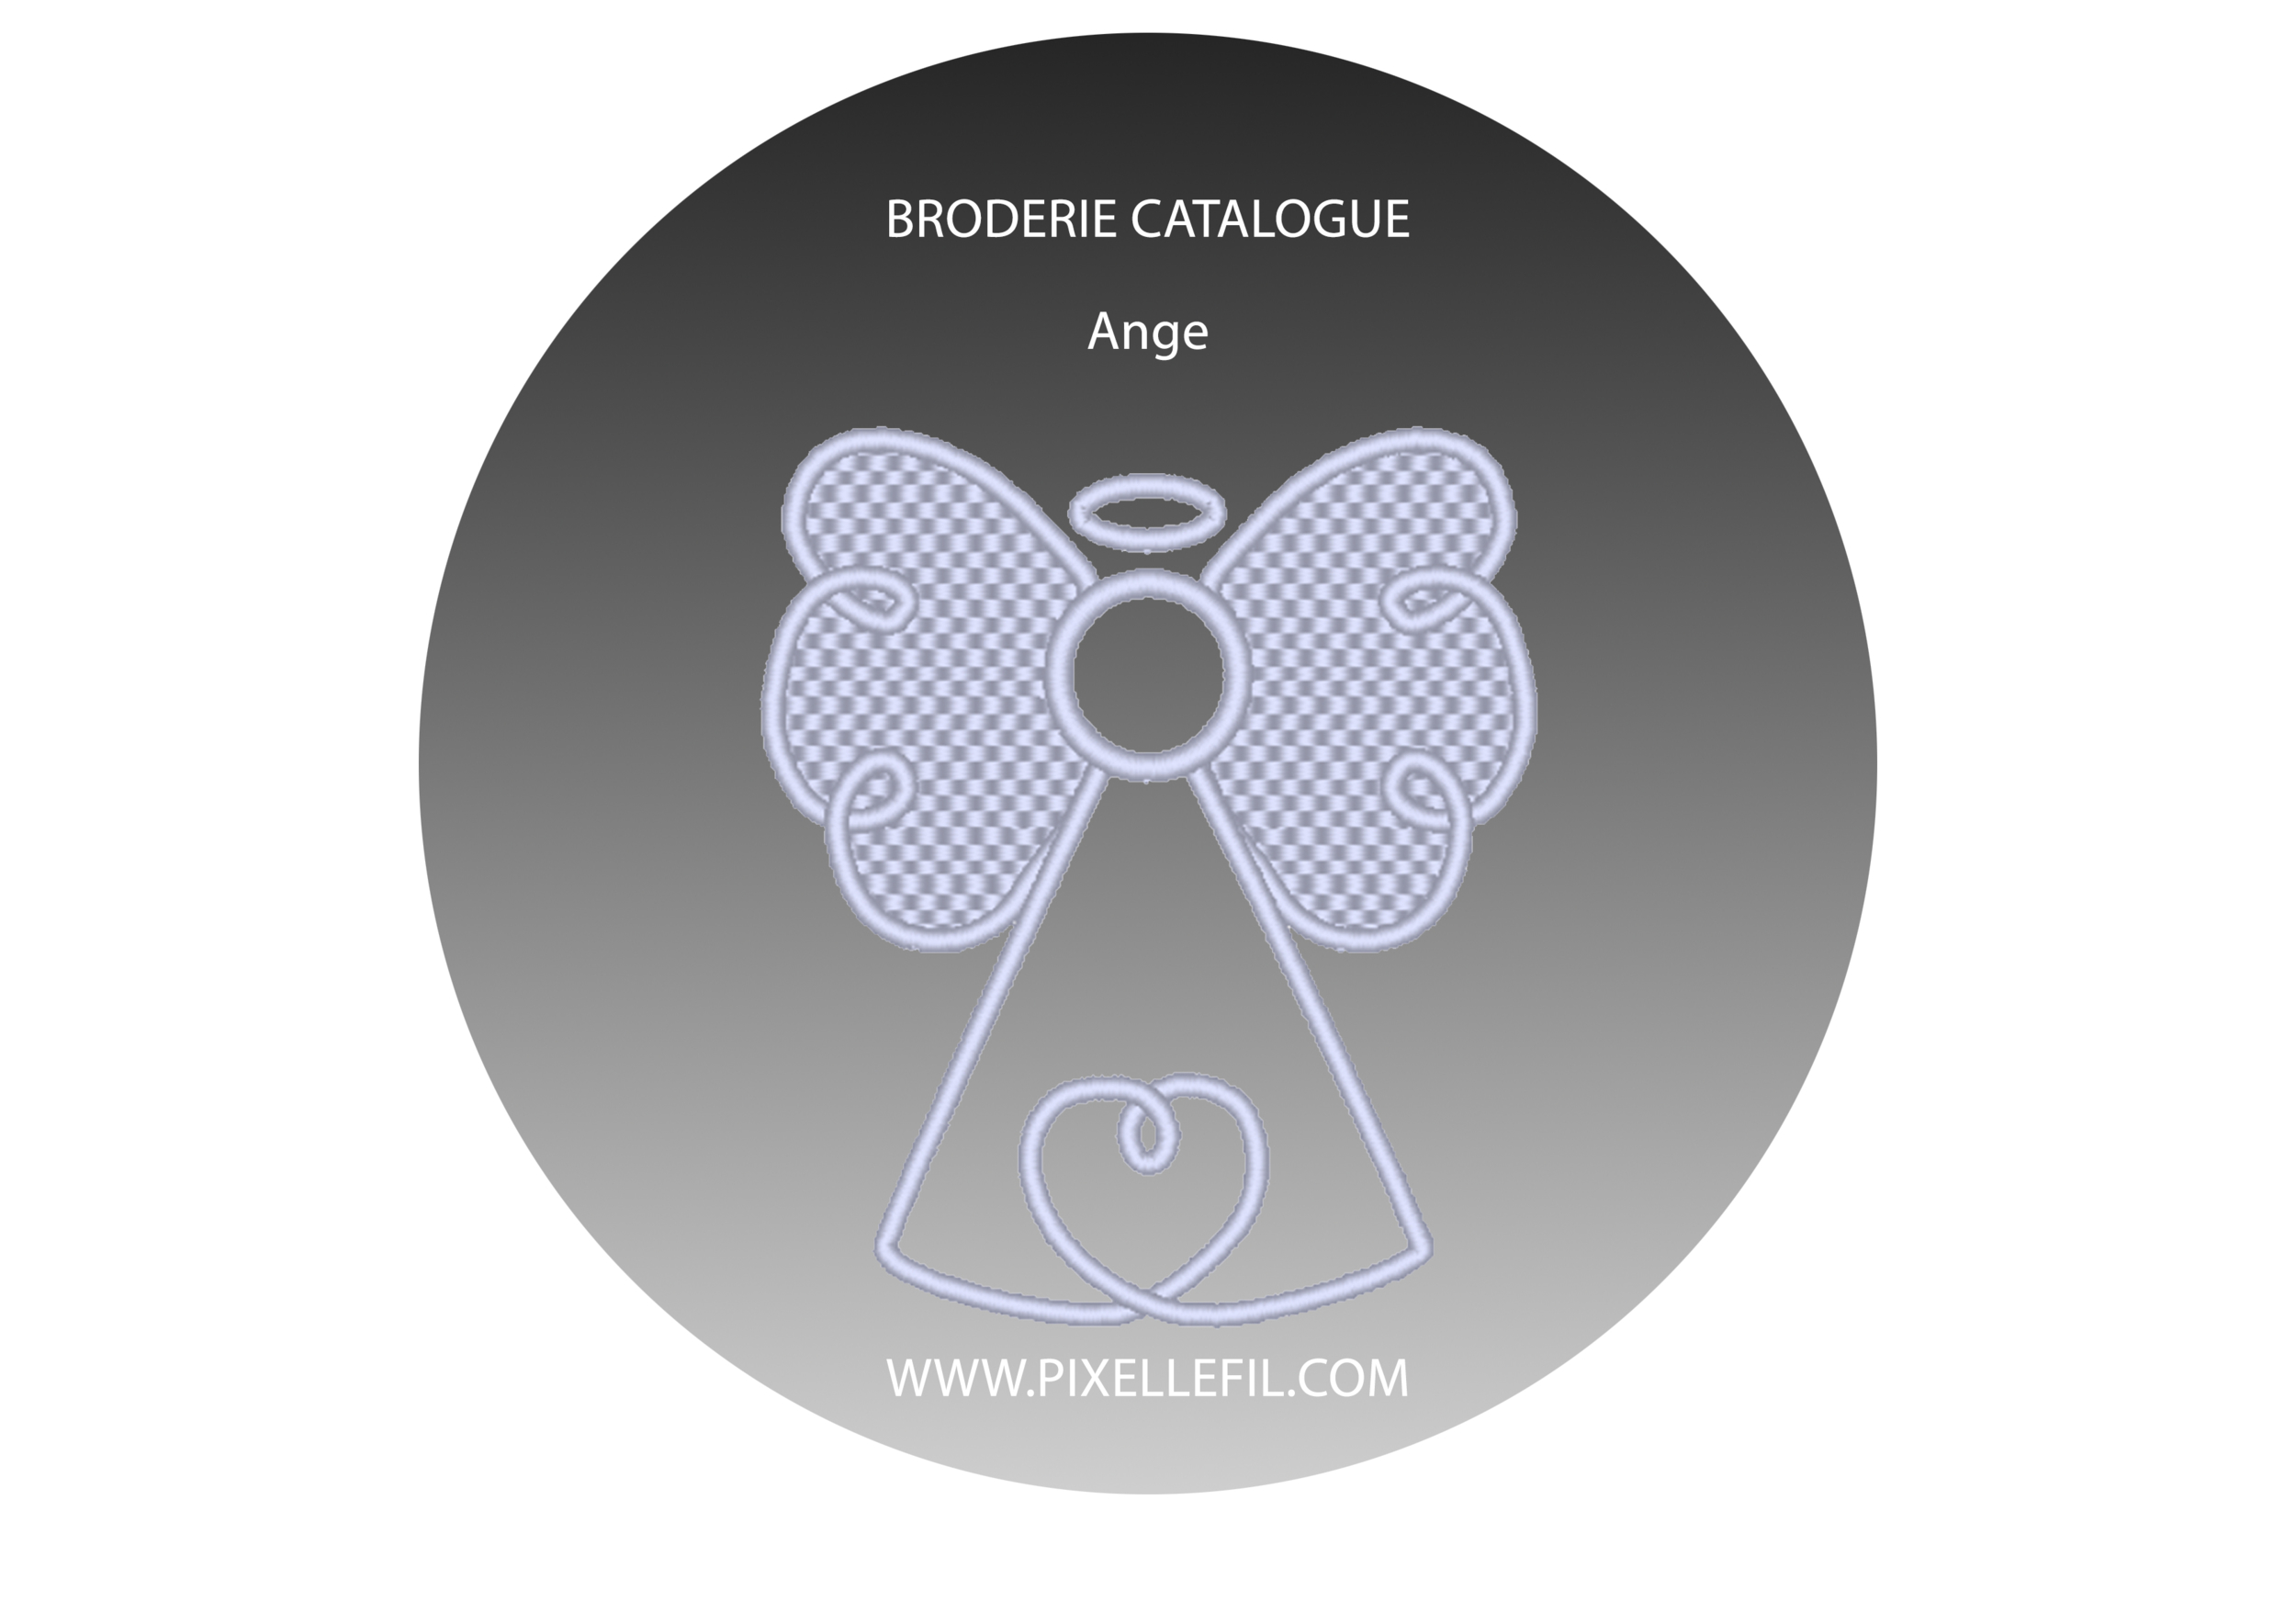 Broderie-catalogue_ange